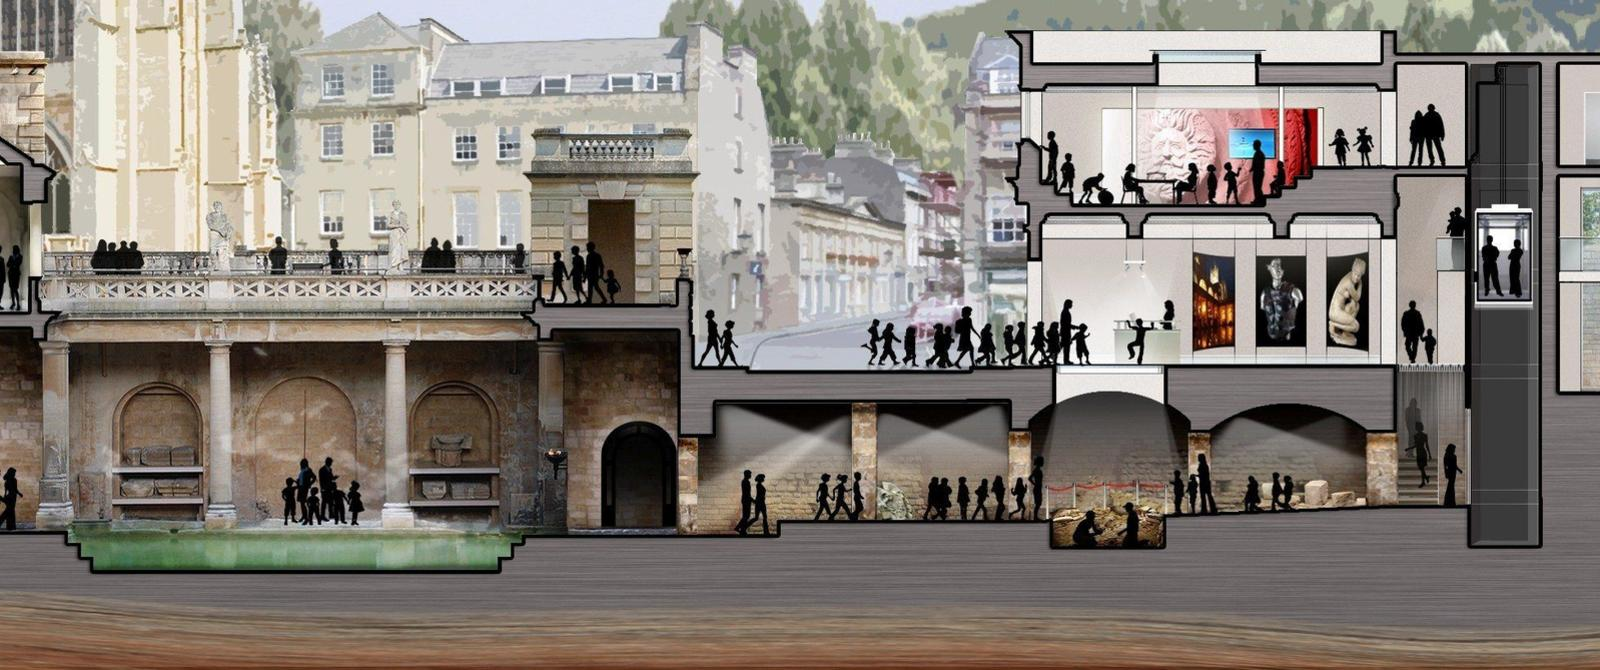 Image: Artists impression of the Archway Project